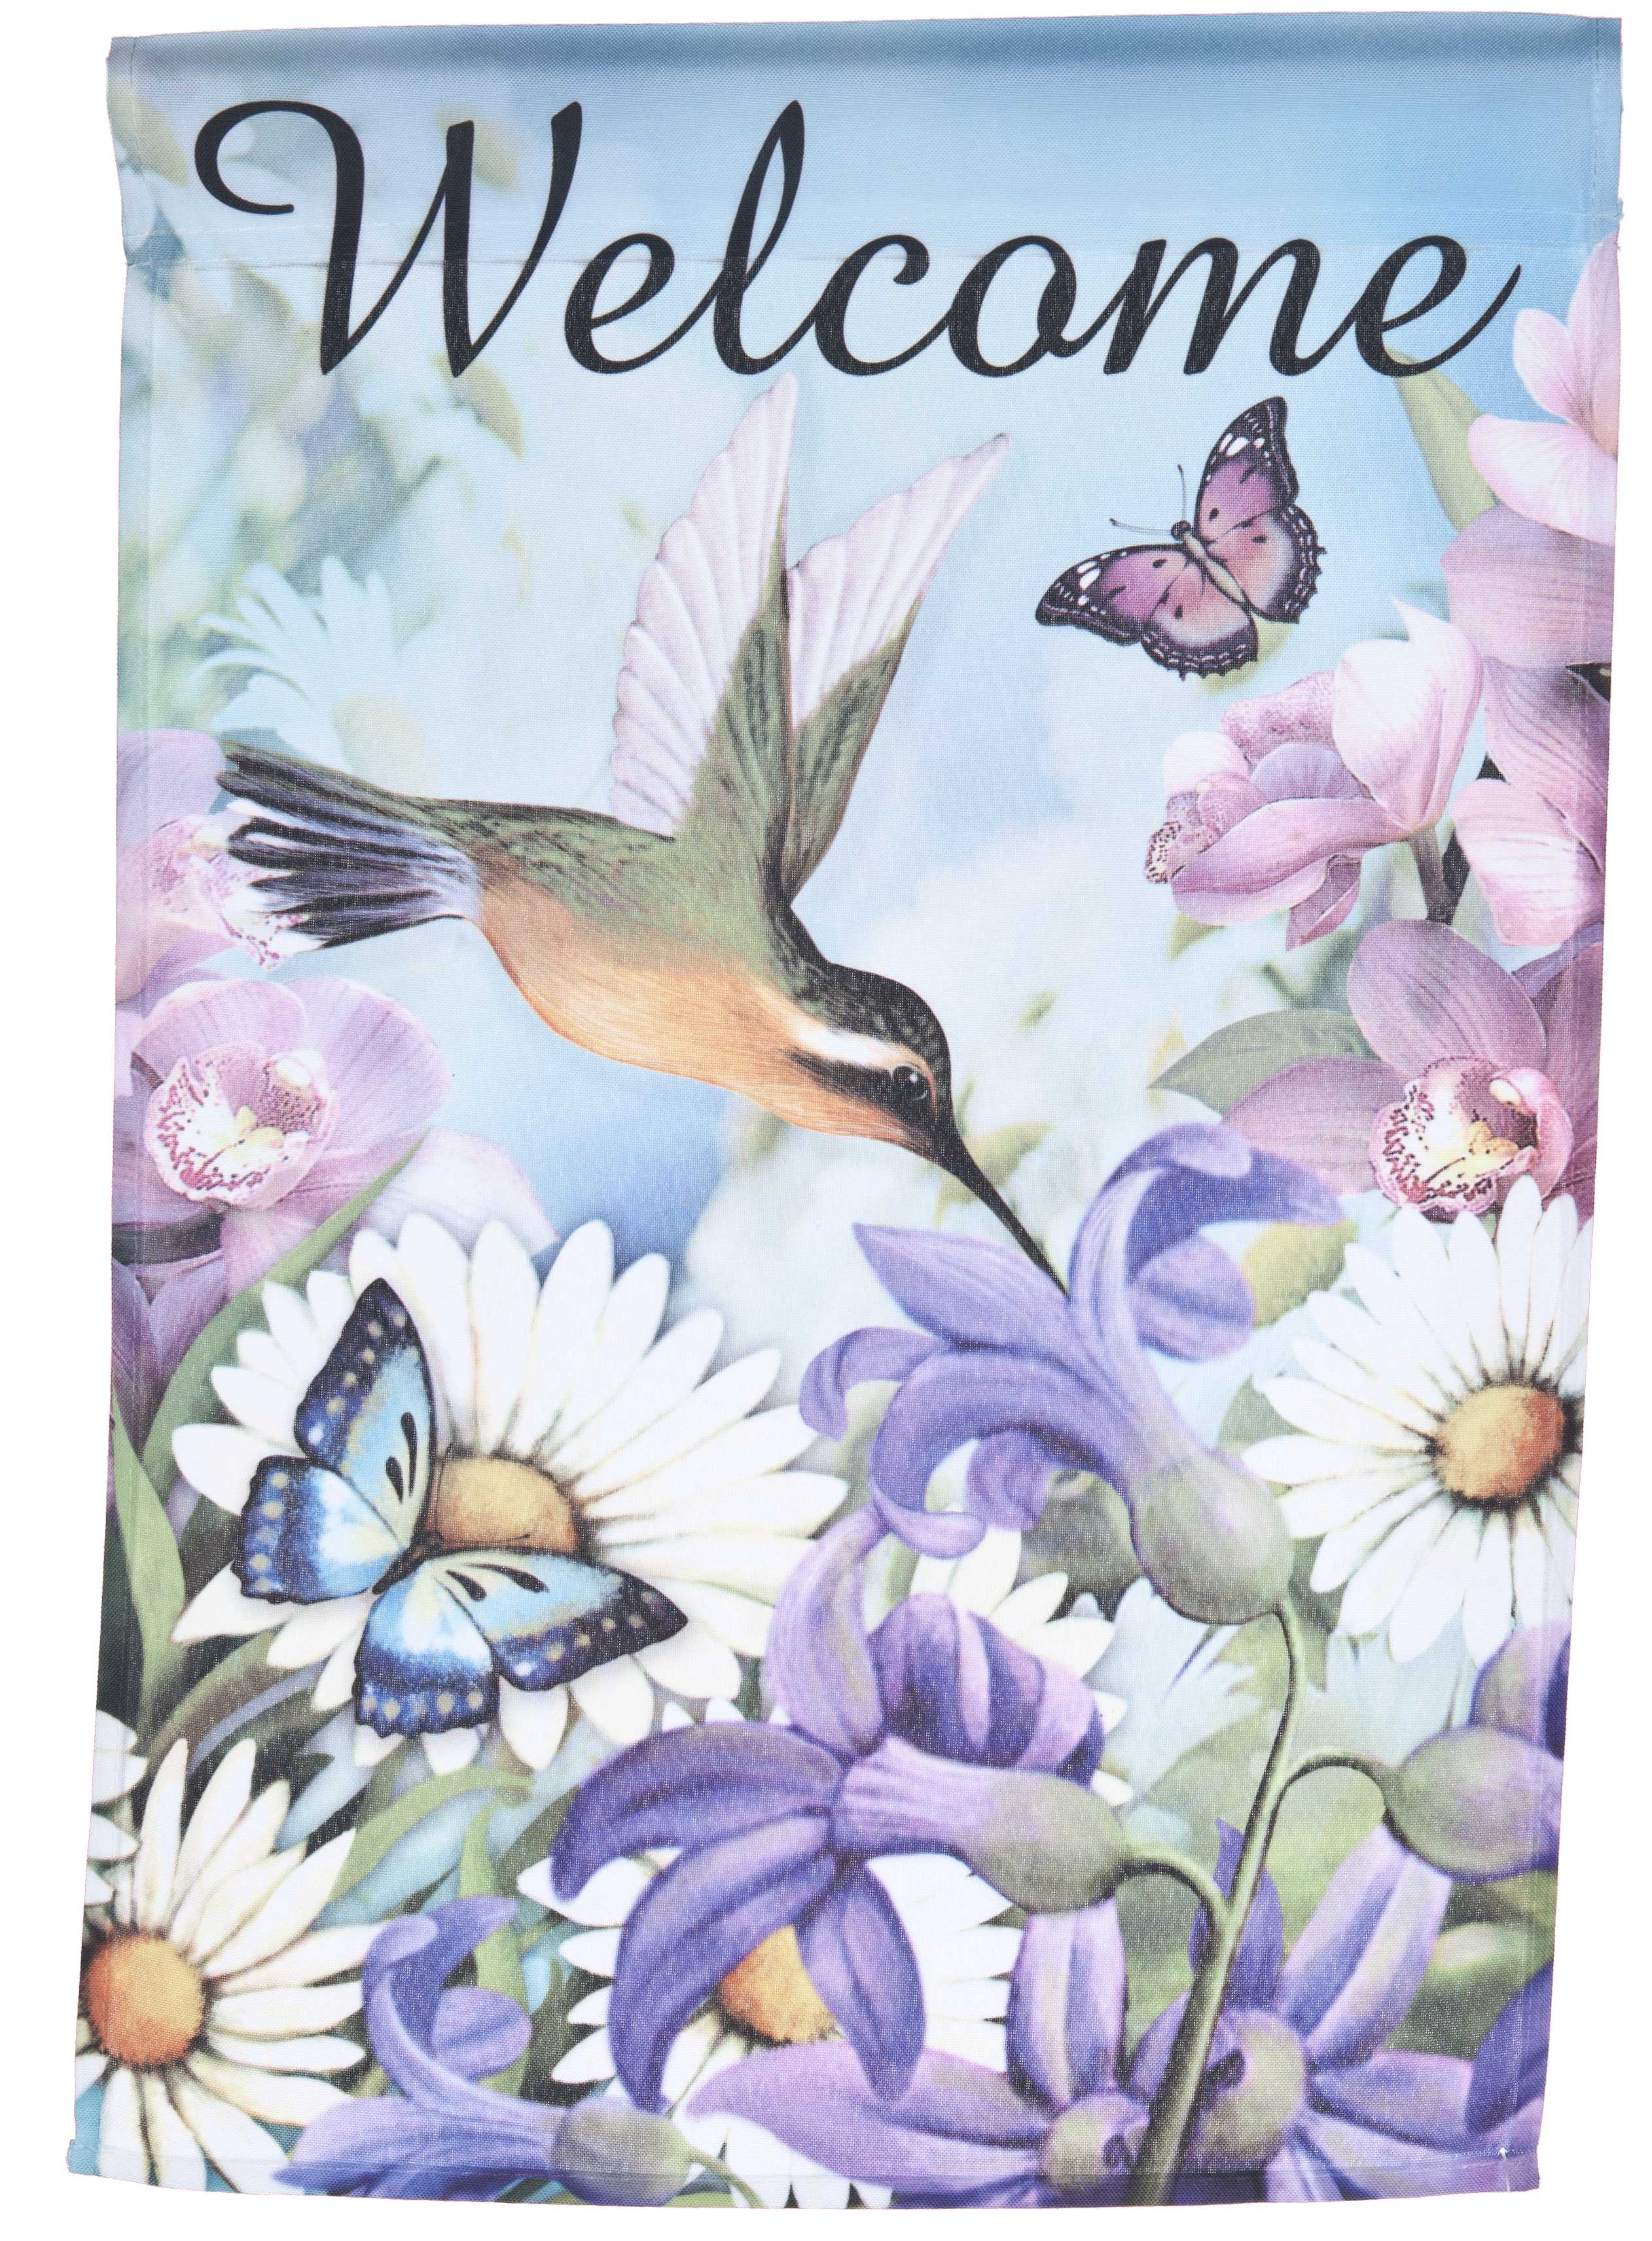 Welcome Lawn Flag w  Hummingbird & Flowers by Garden Accents (12 x 18 Inch) by